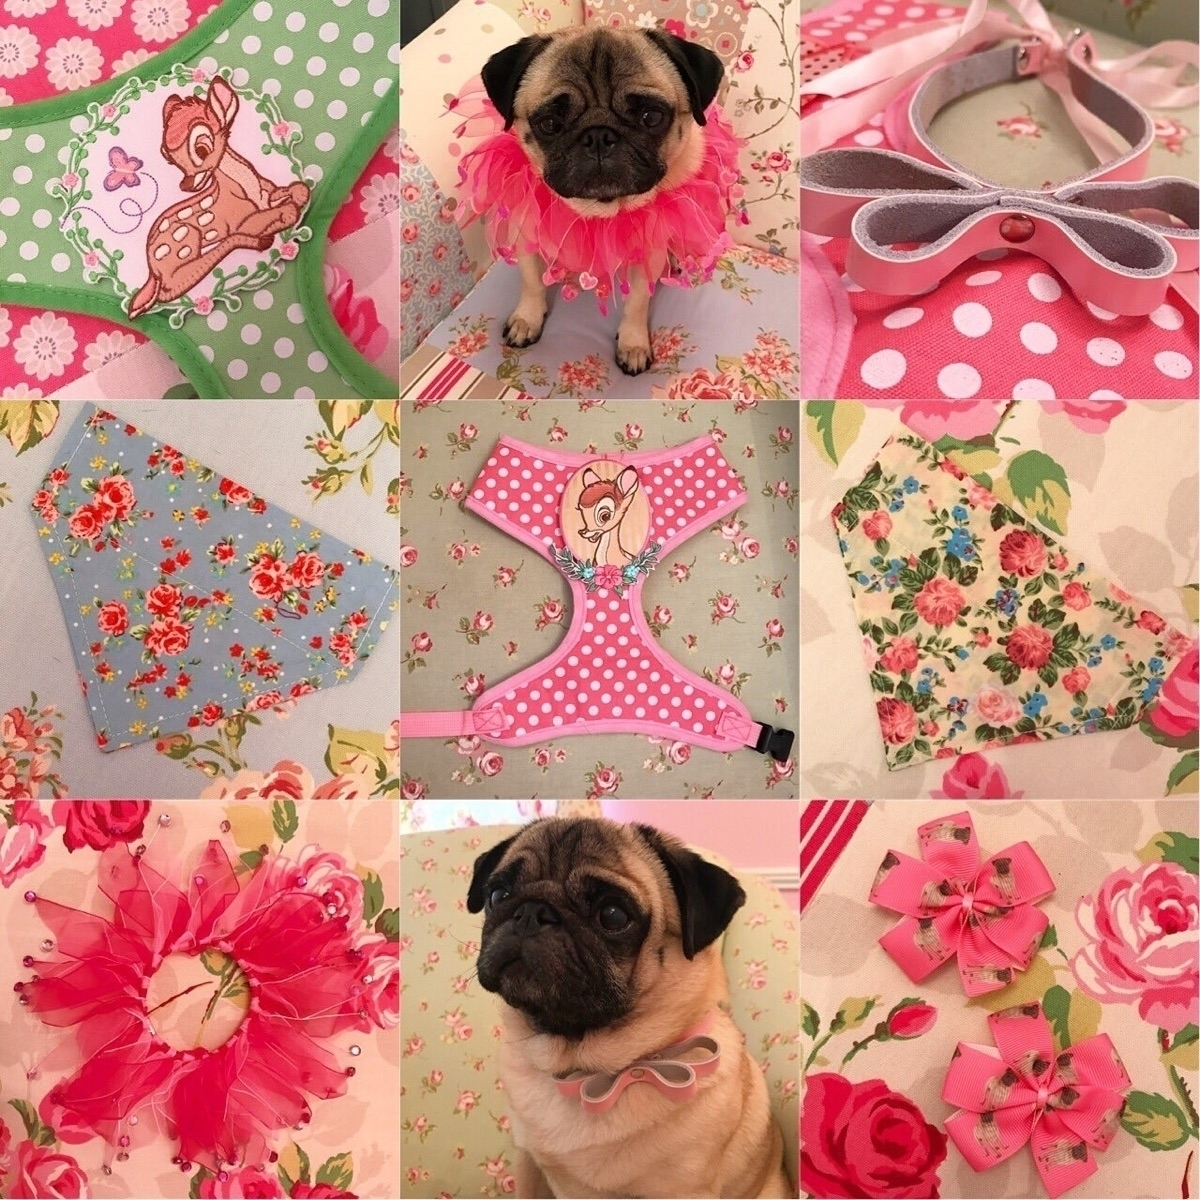 Home Is Where The Pug Is (@homeiswherethepugis) Cover Image